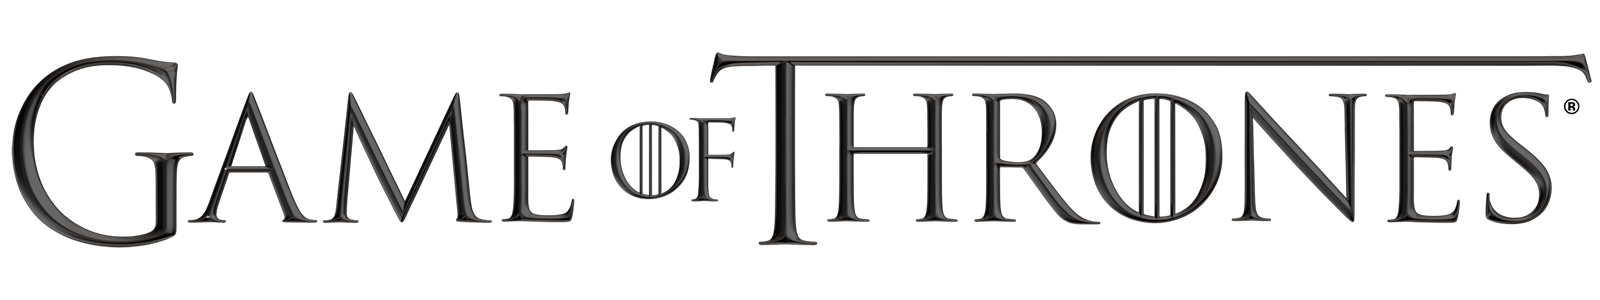 Image result for game of thrones logo